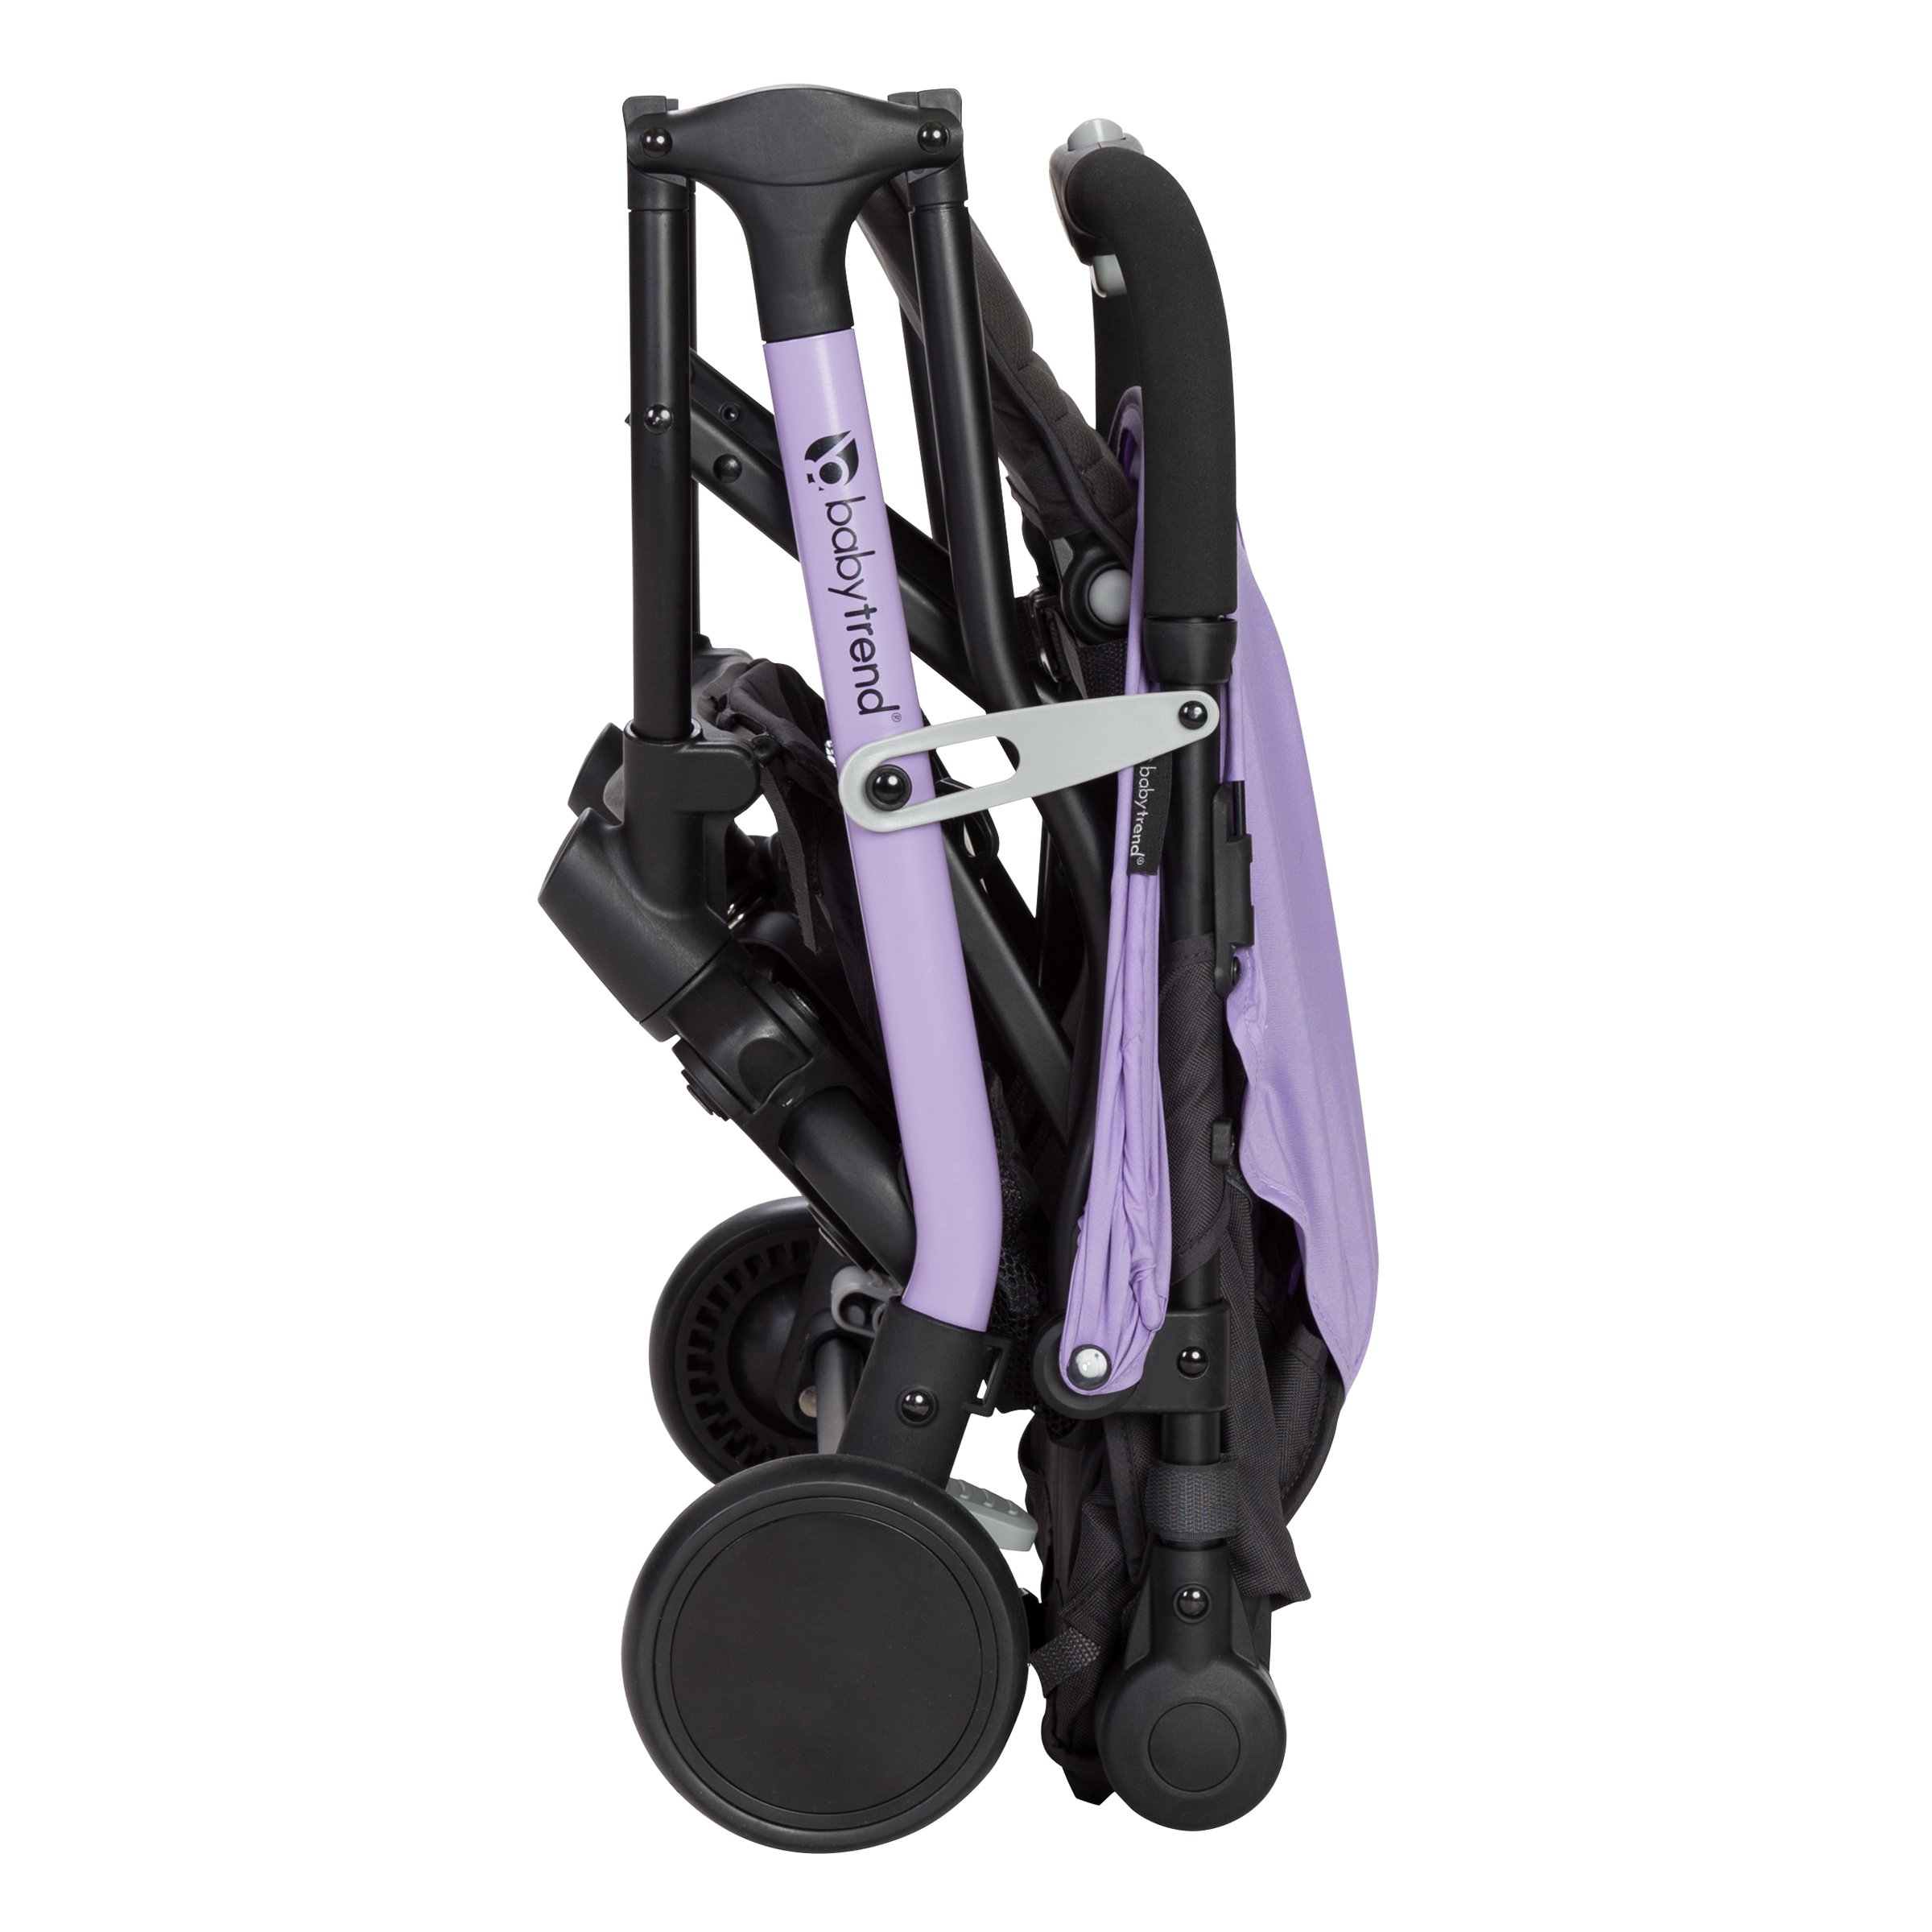 Baby Trend Tri-Fold Mini Stroller, Lilac by Baby Trend (Image #5)